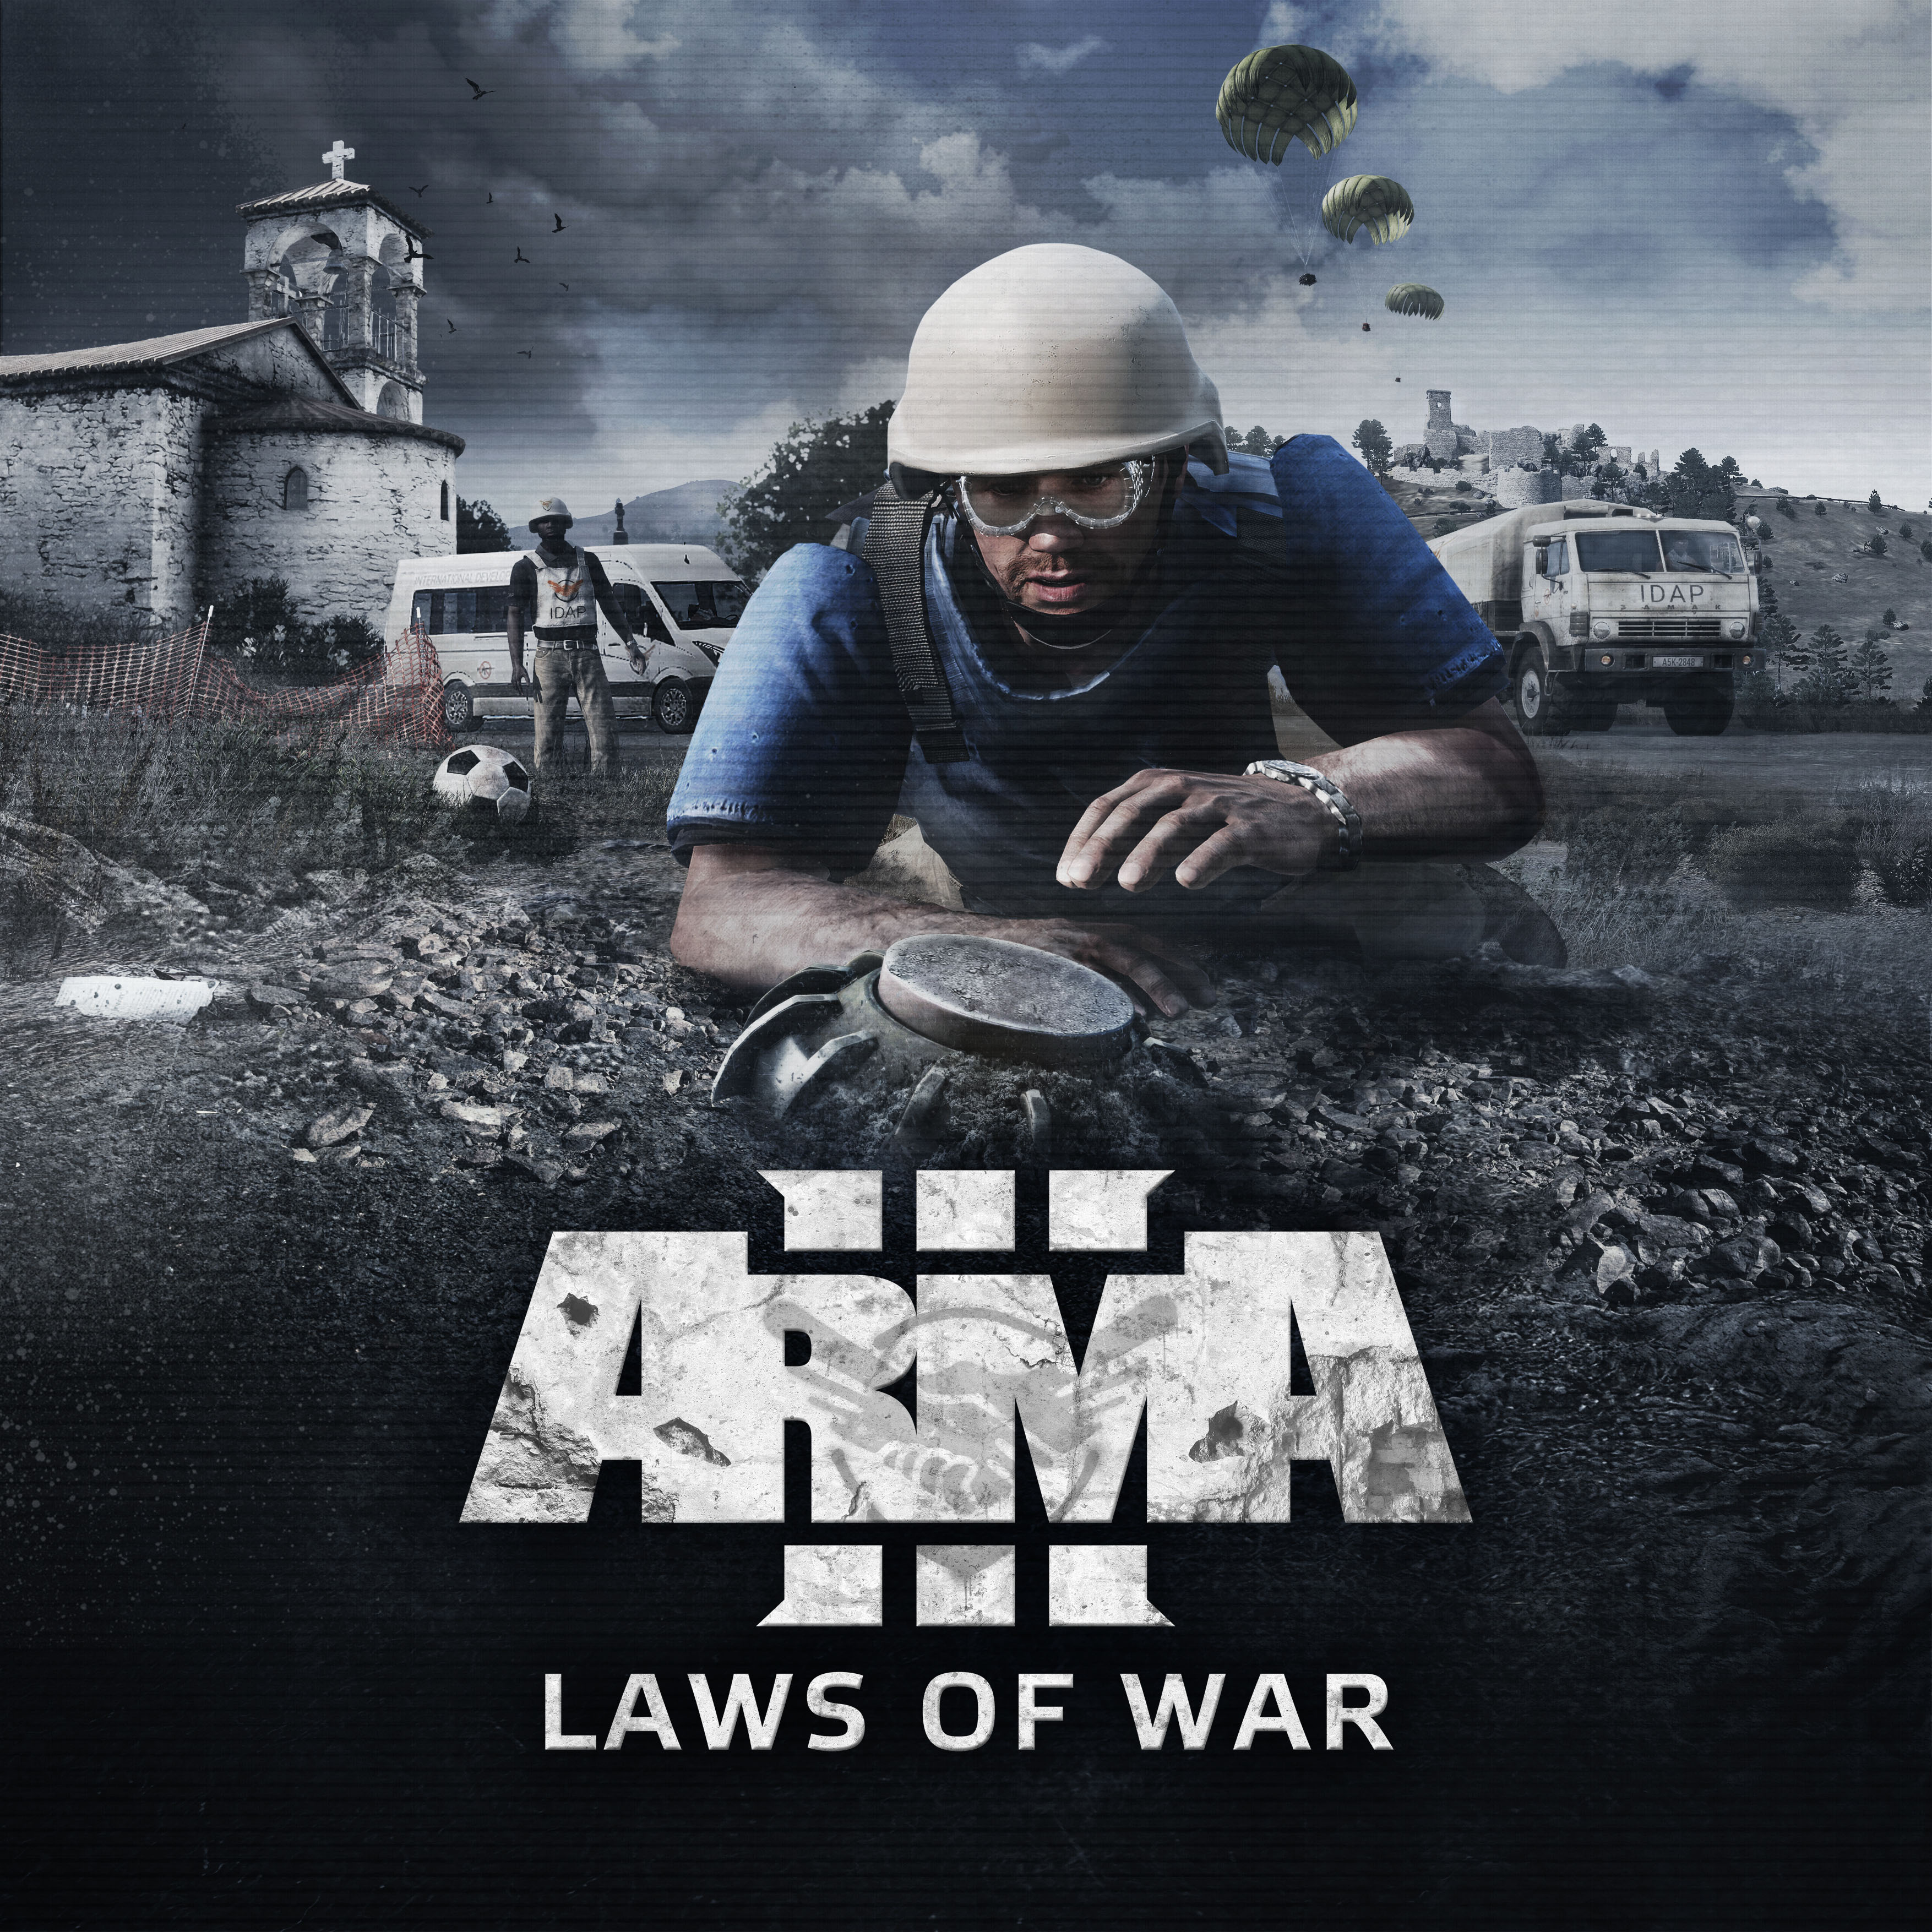 Arma 3 developer donates $176,000 to International Committee of the Red Cross